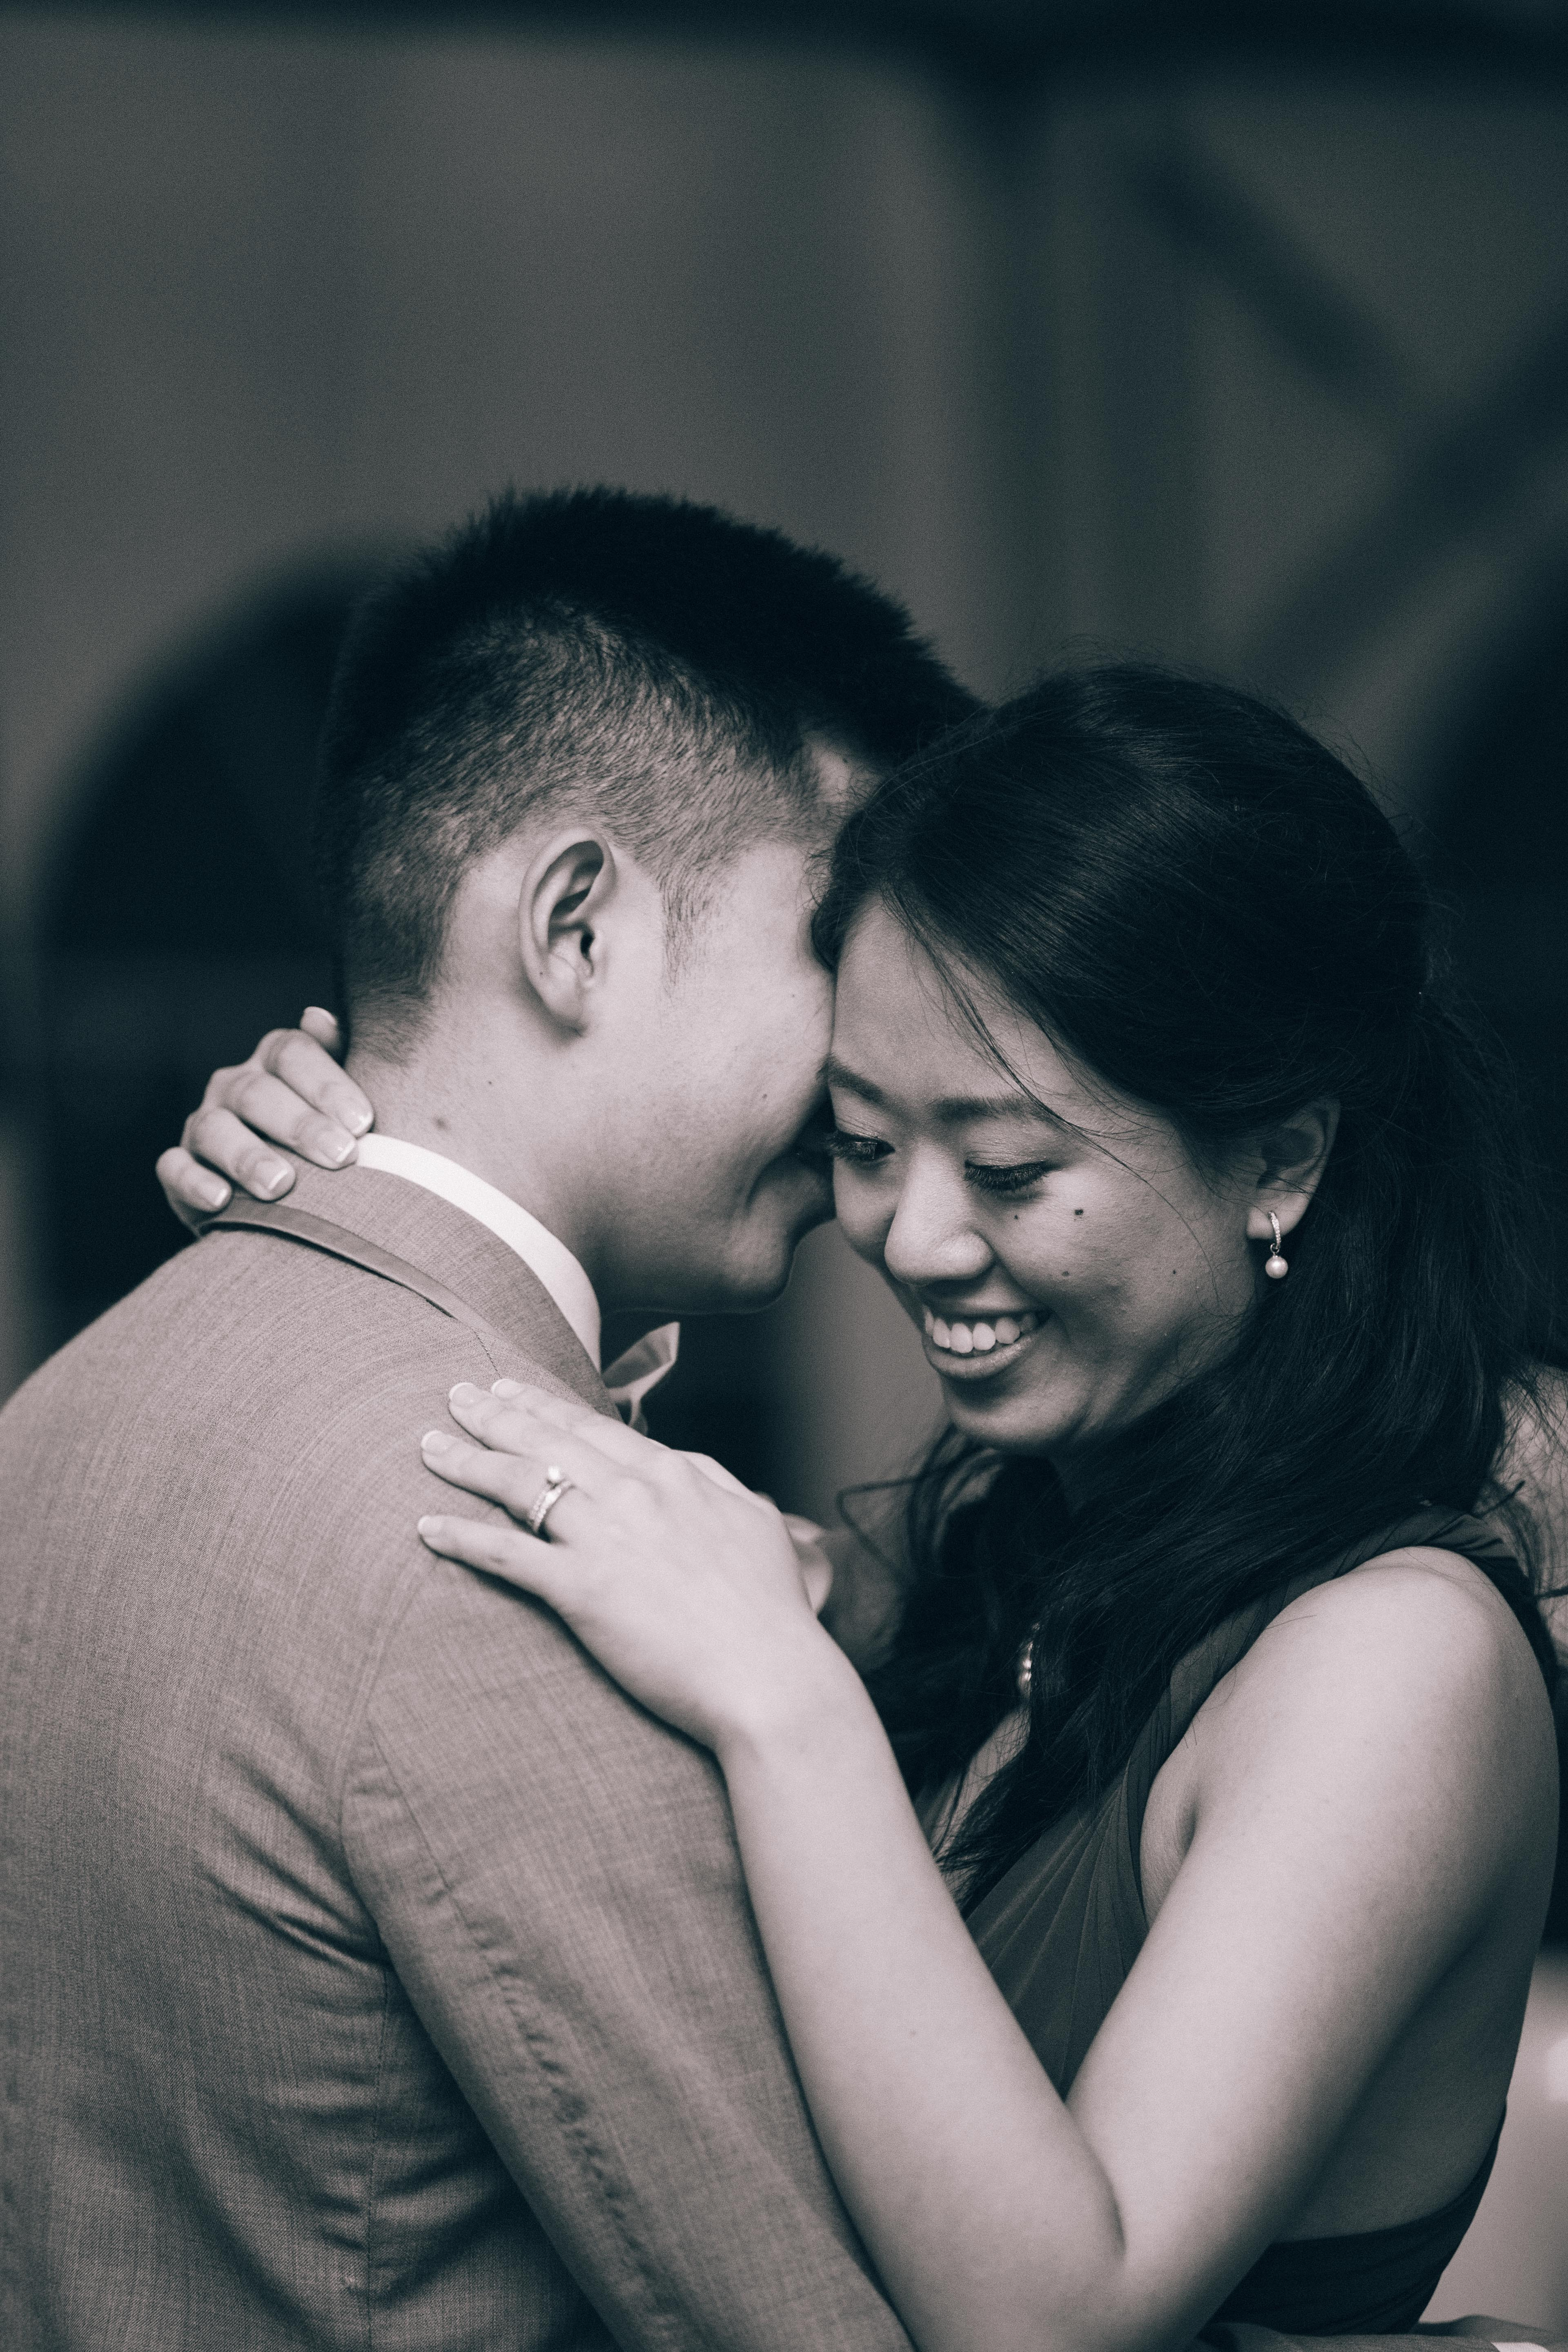 Chinese bride smiles during first dance as groom kisses her on the cheek at wedding reception at the Mandarin Country Club